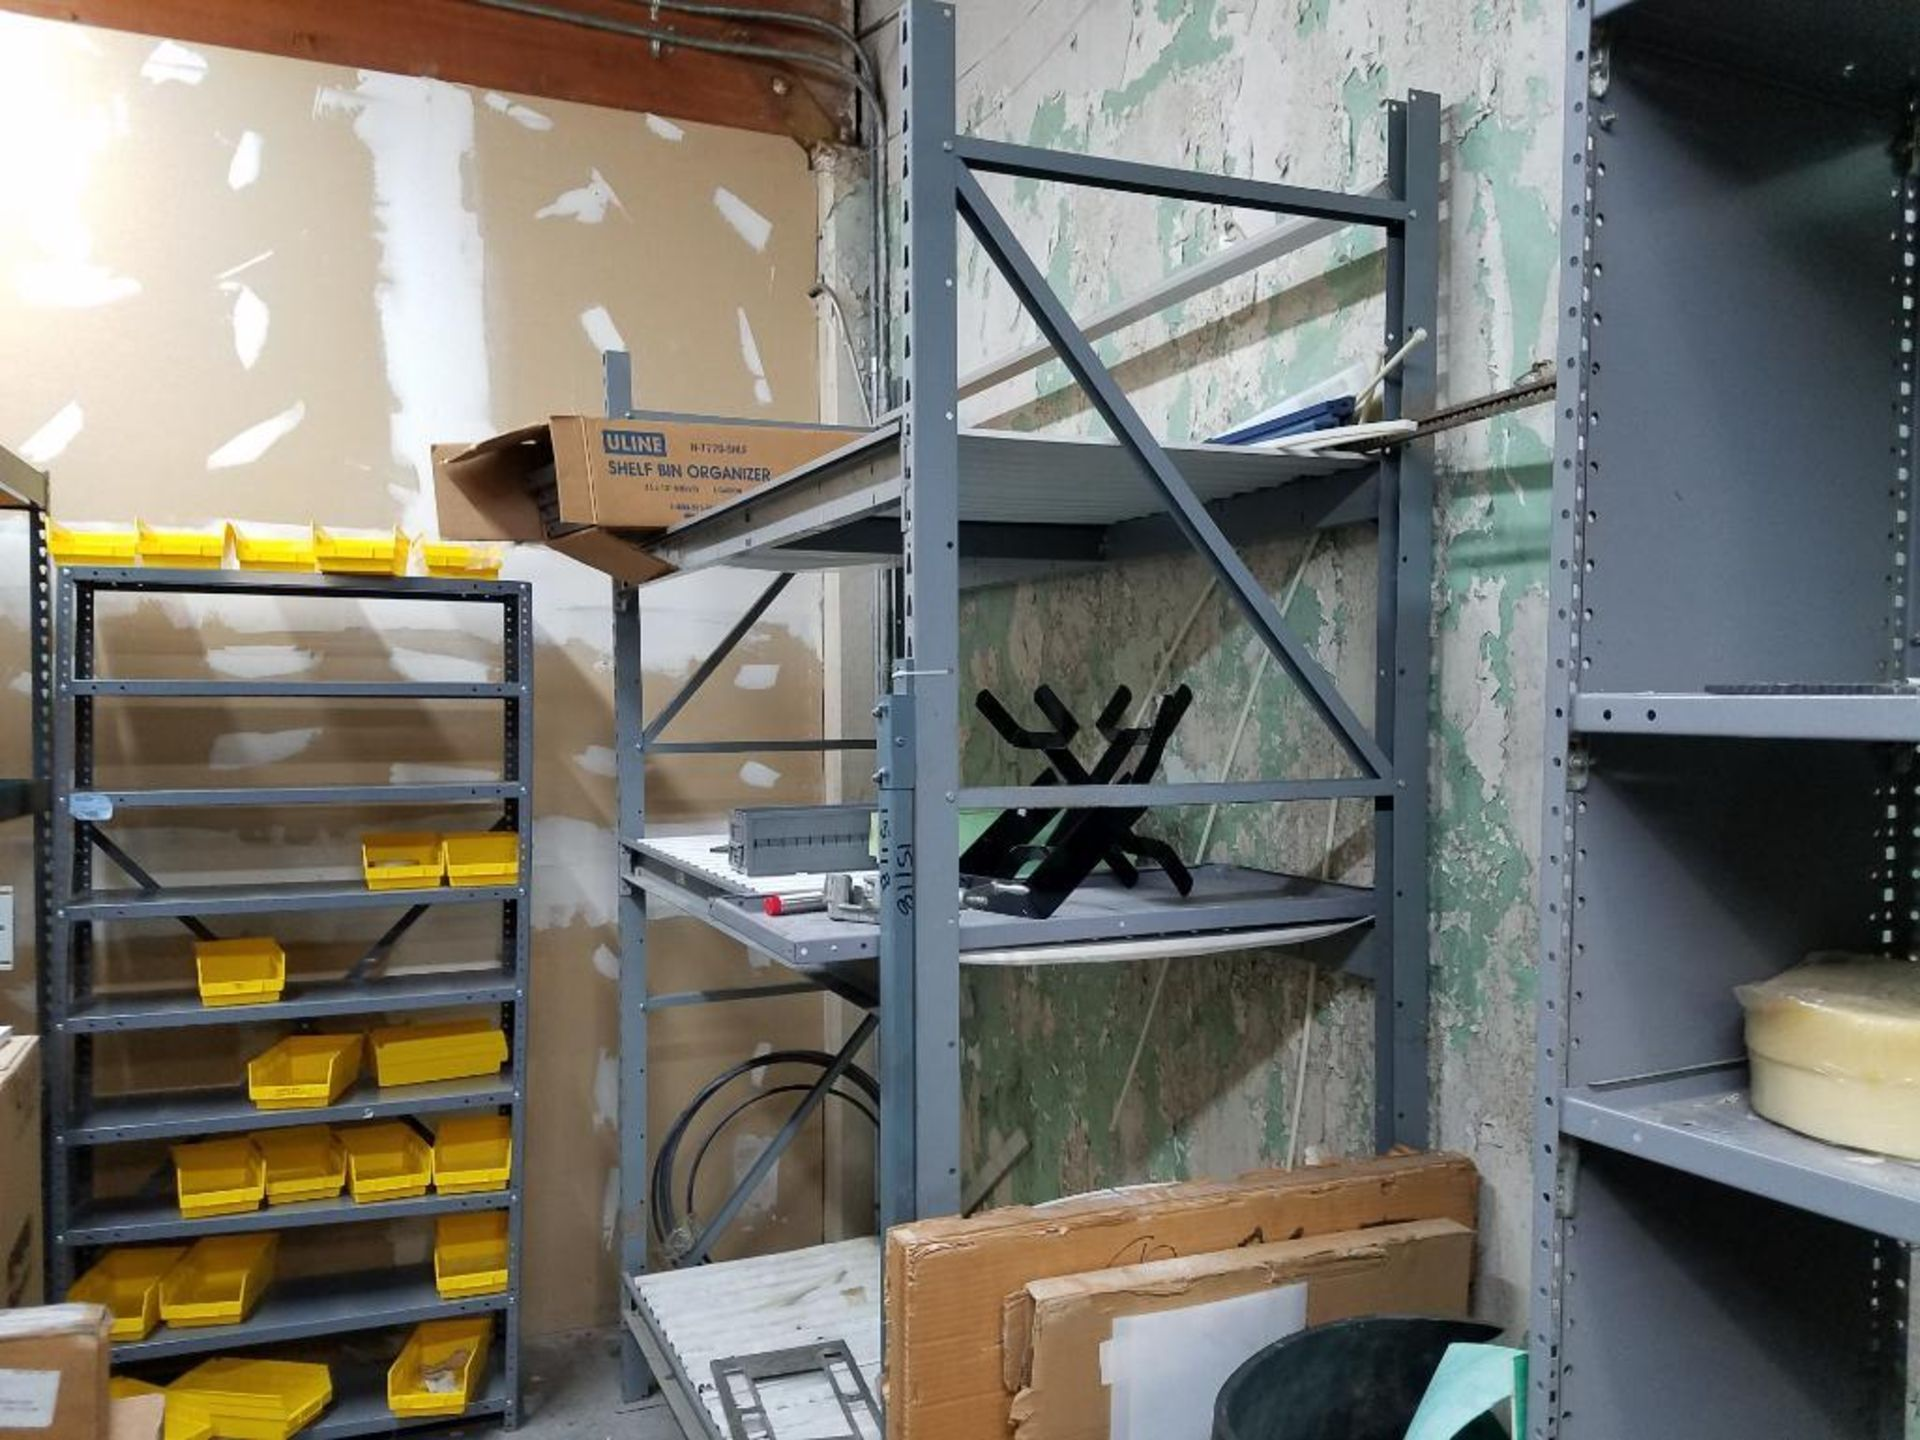 all shelving and storage units located in MRO room - Image 6 of 11